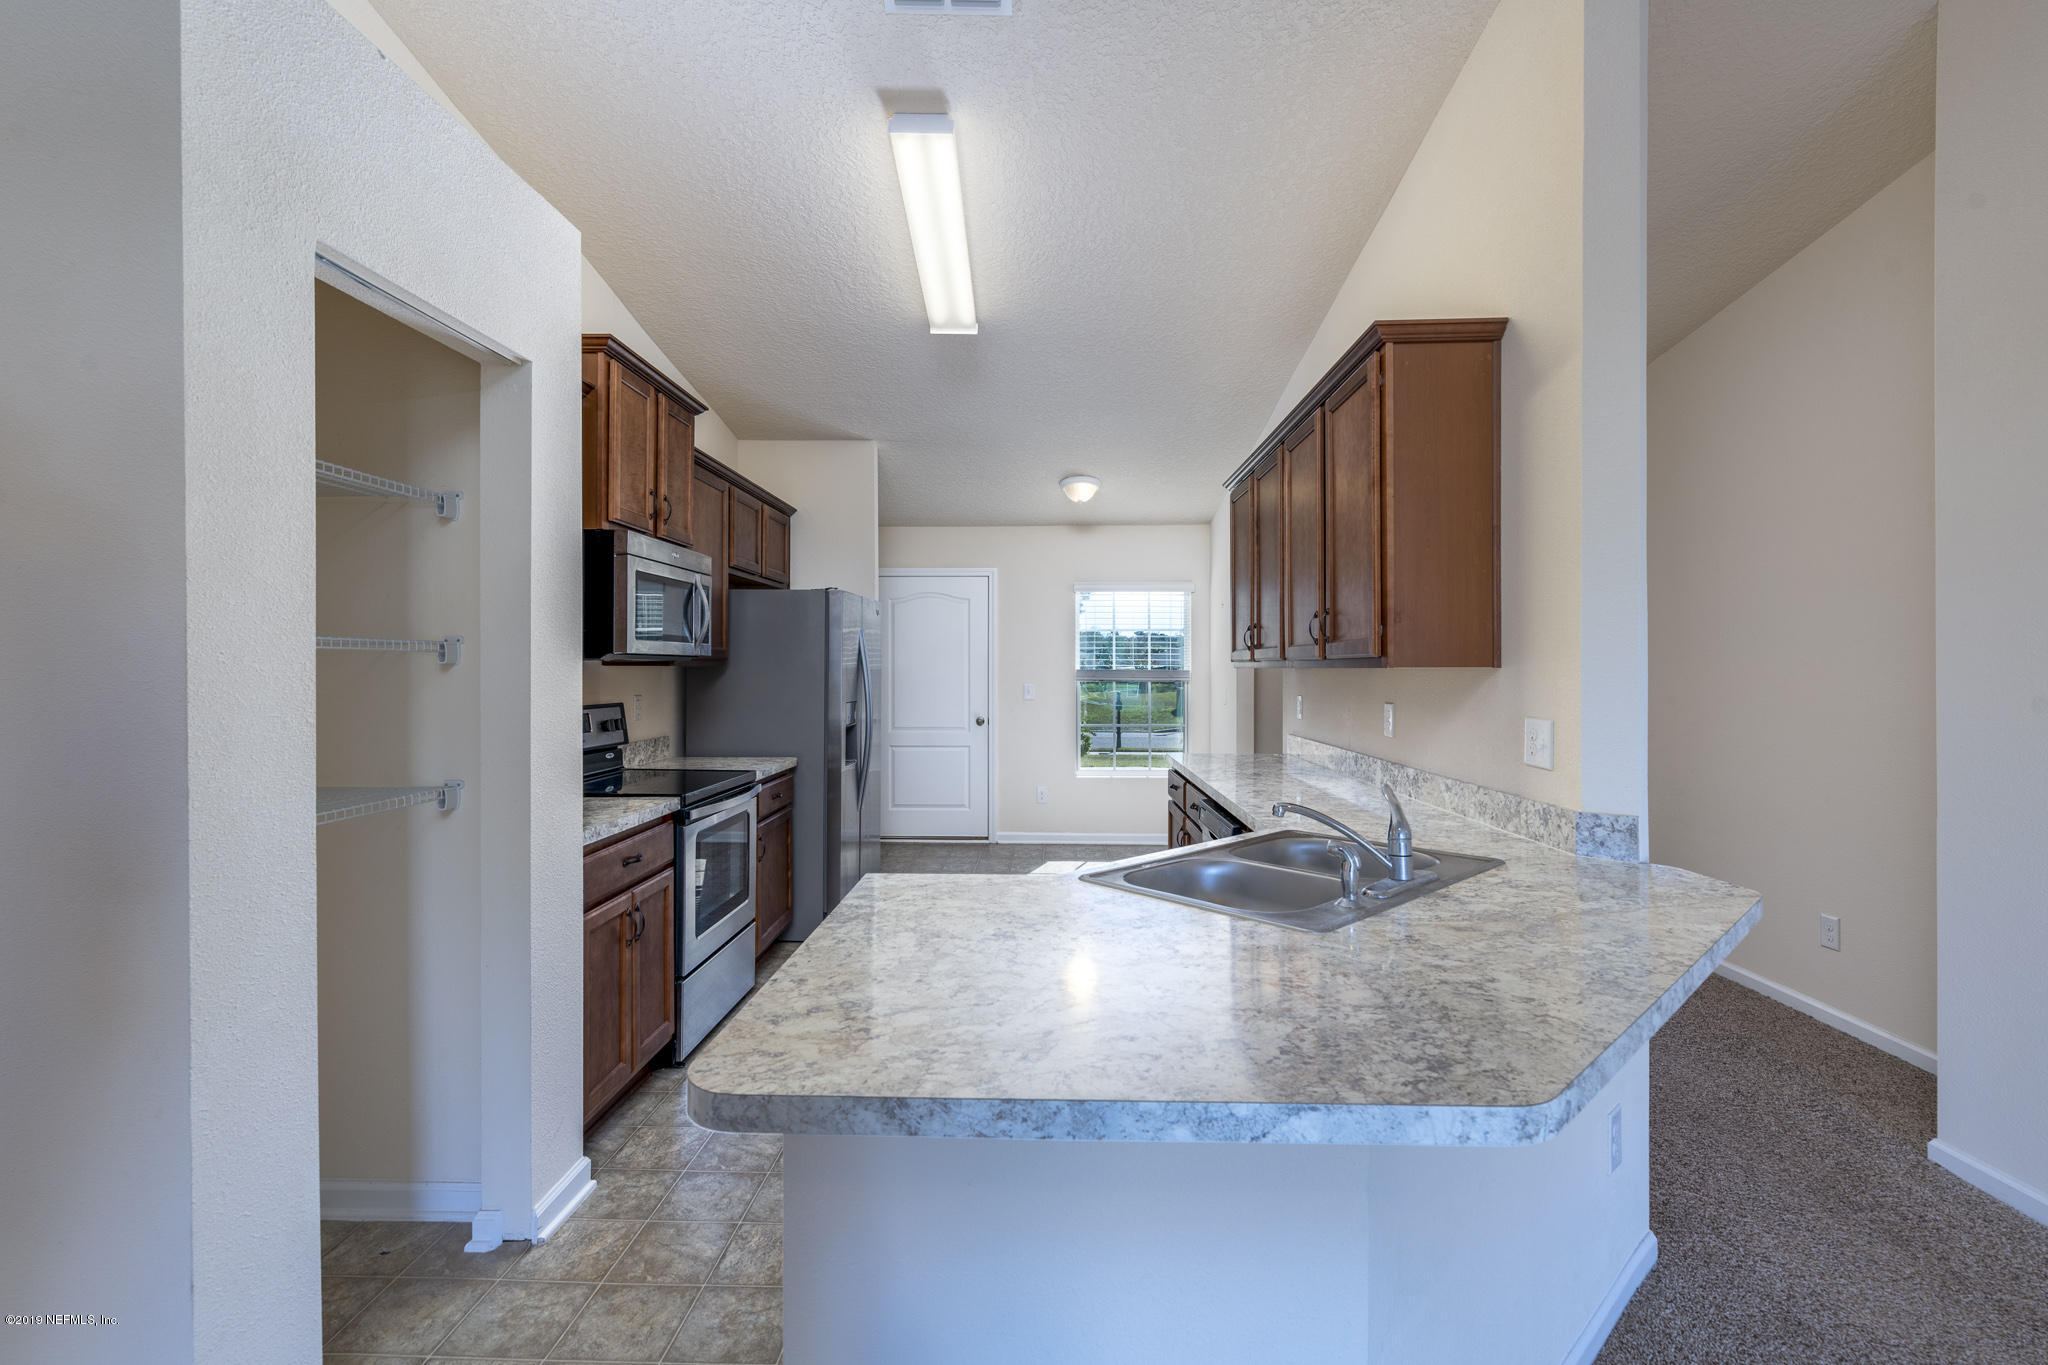 3247 CANYON FALLS, GREEN COVE SPRINGS, FLORIDA 32043, 3 Bedrooms Bedrooms, ,2 BathroomsBathrooms,Residential - single family,For sale,CANYON FALLS,974146